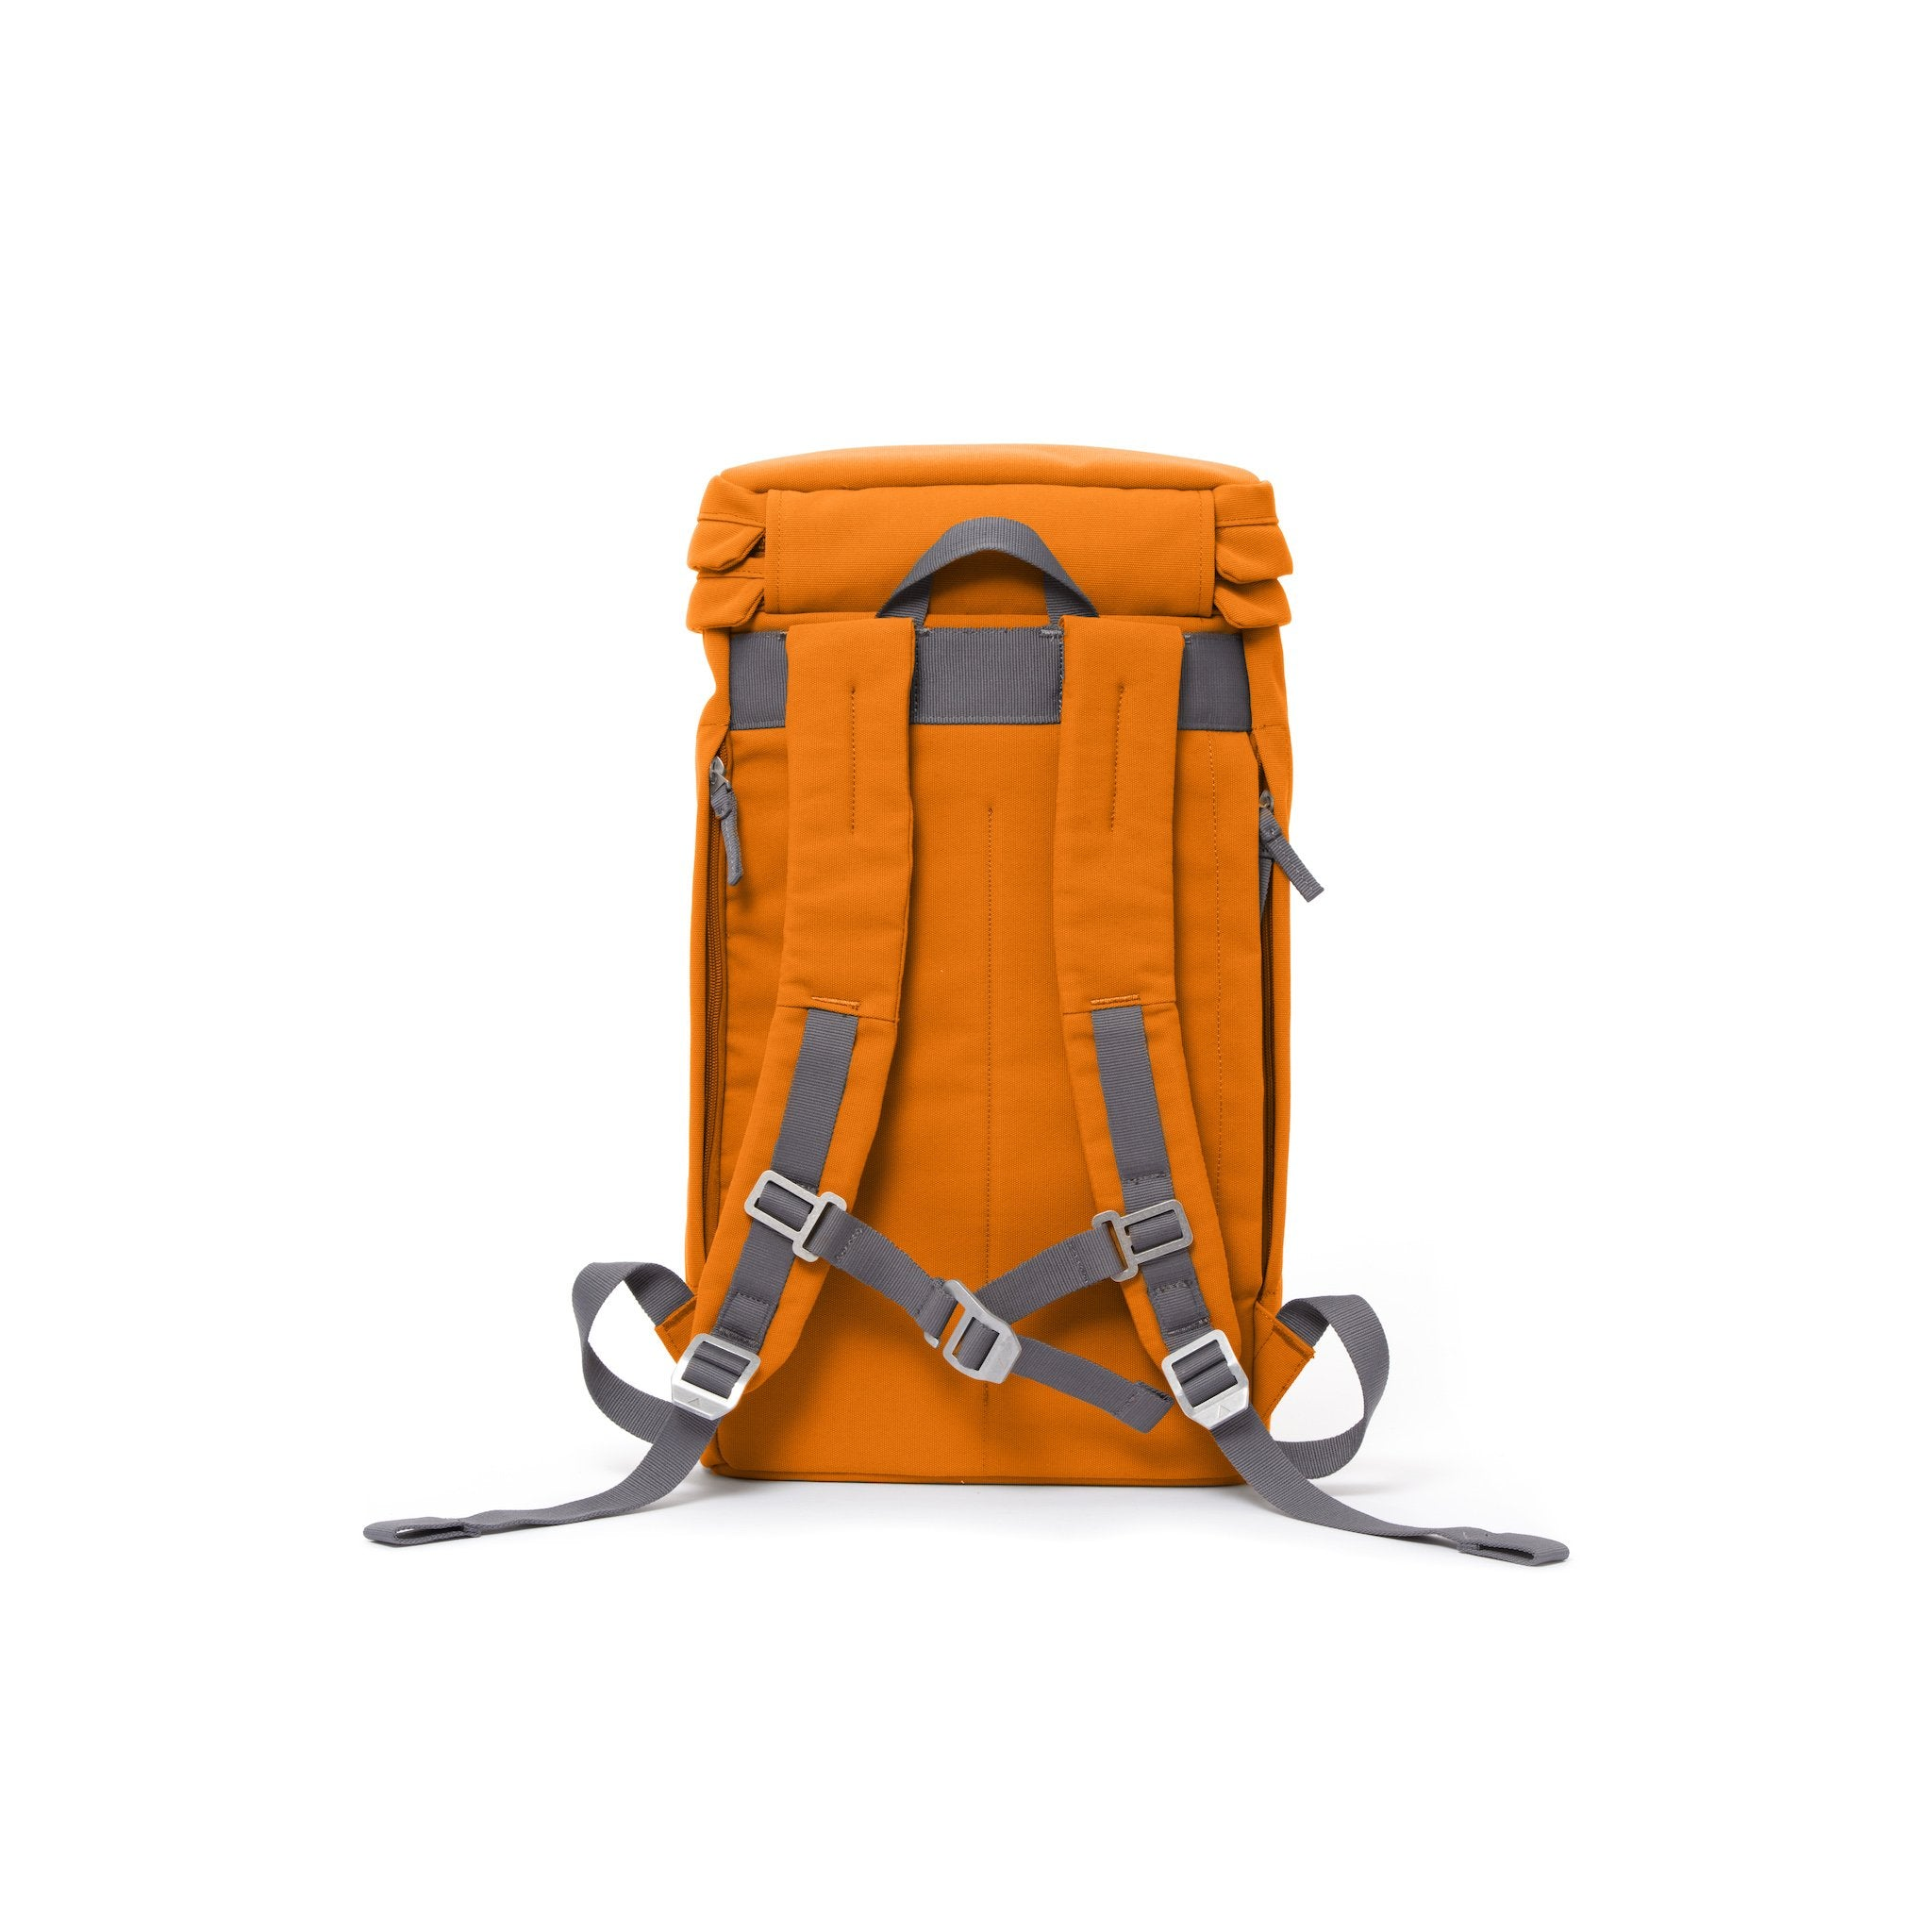 Orange canvas backpack with padded shoulder straps and chest strap.